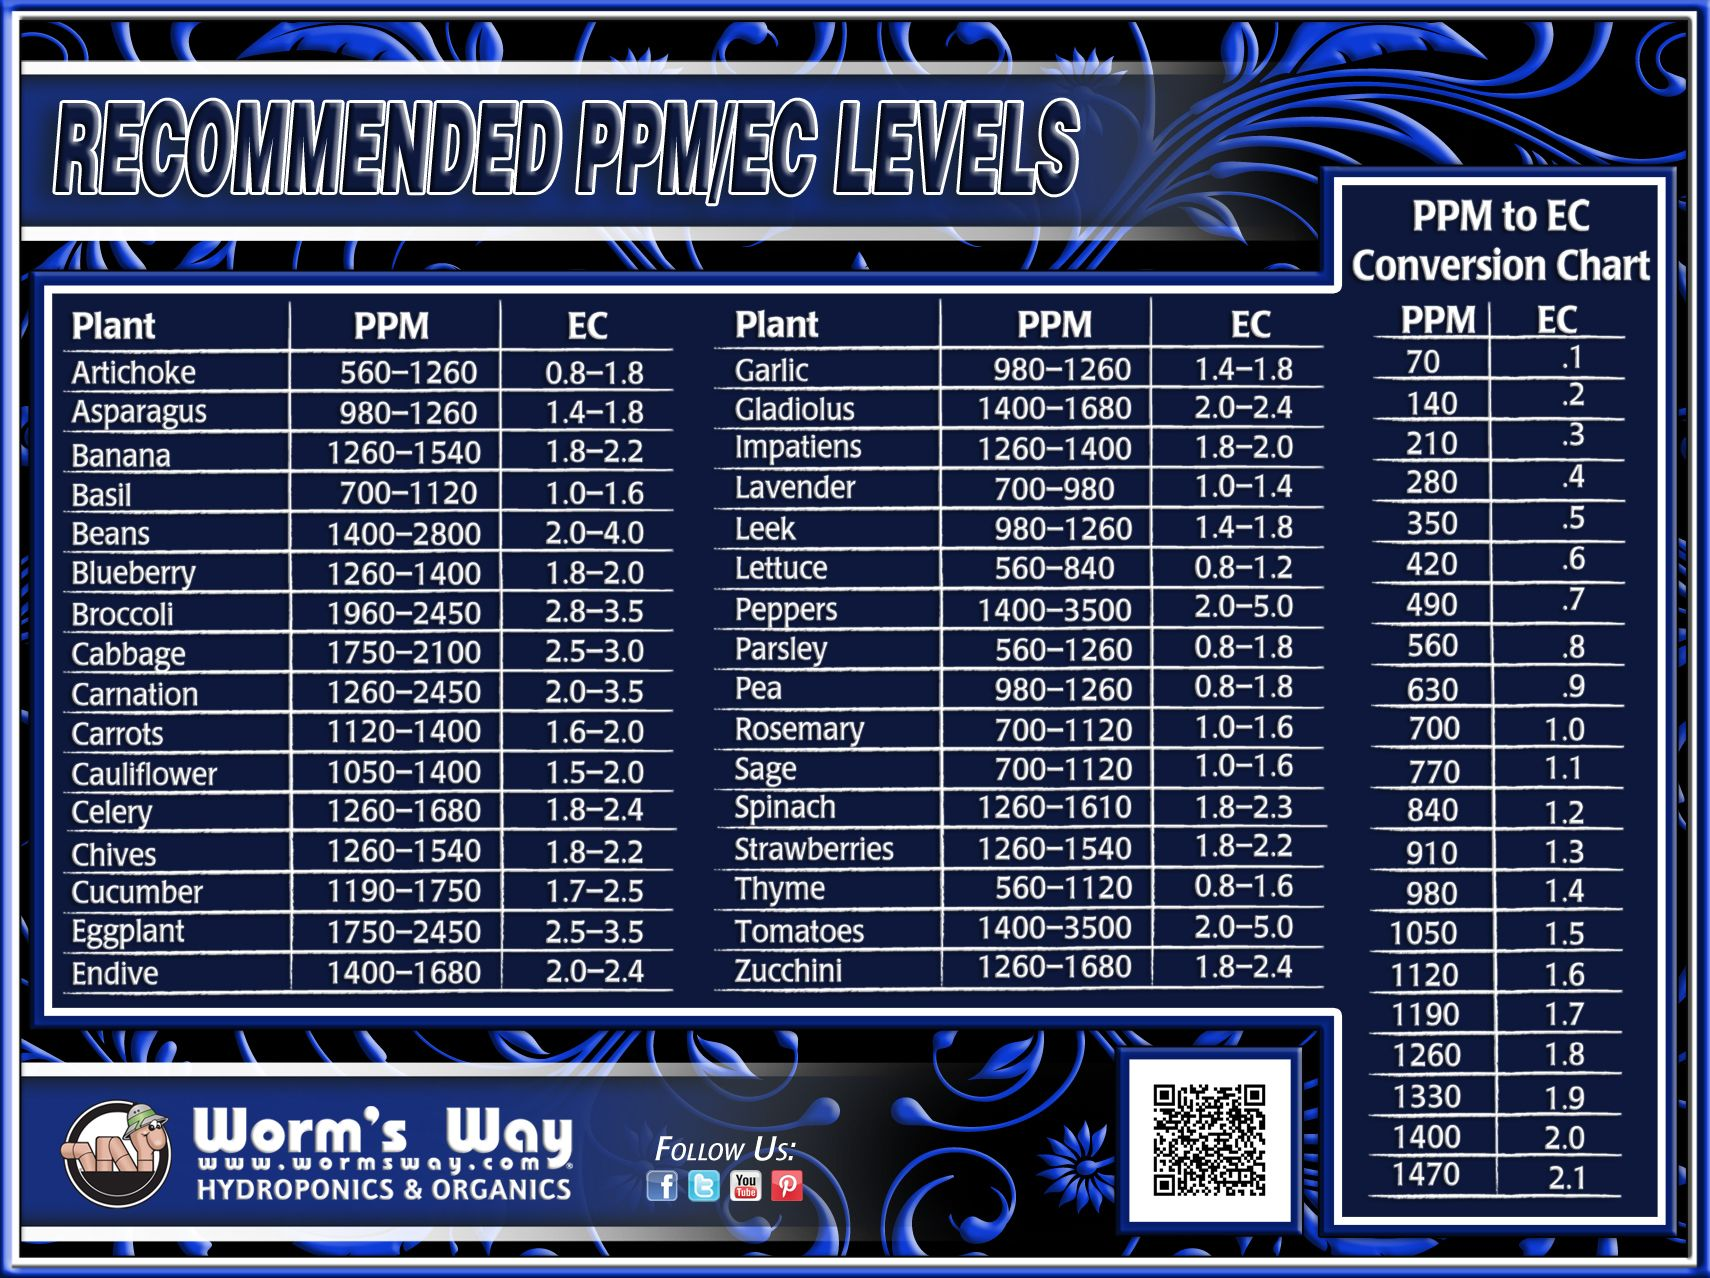 Recommended PPM/EC Levels! www WormsWay com | Hydroponics